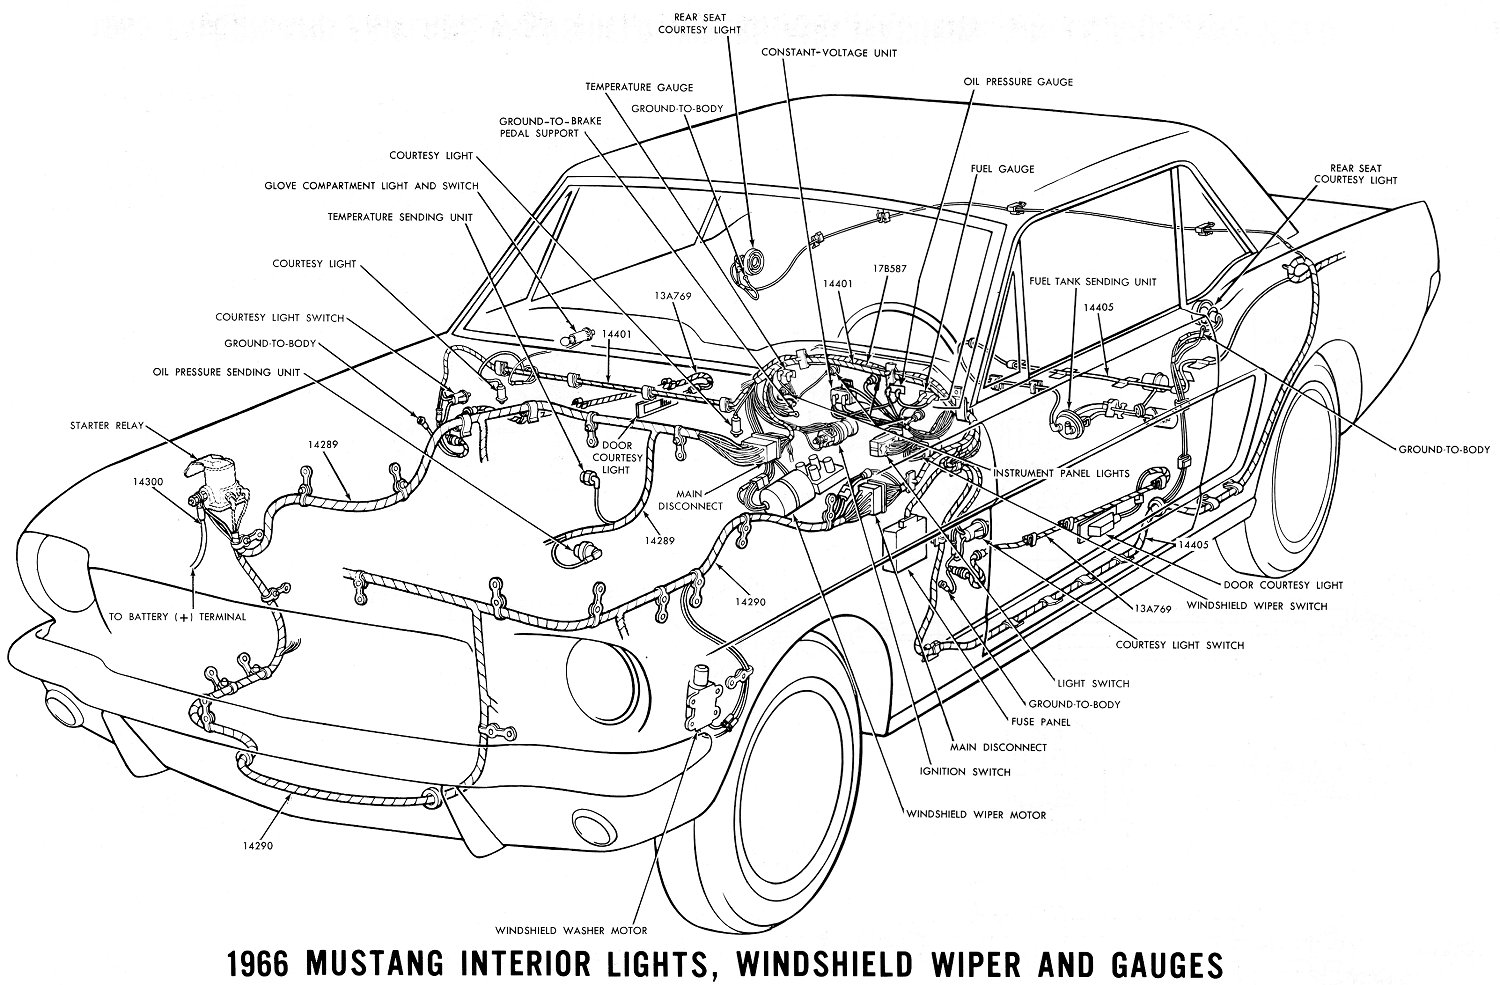 Vintage Mustang Wiring Diagrams Diagram 67 Triumph Gt6 Lighting Schematics 66 Interior Detail